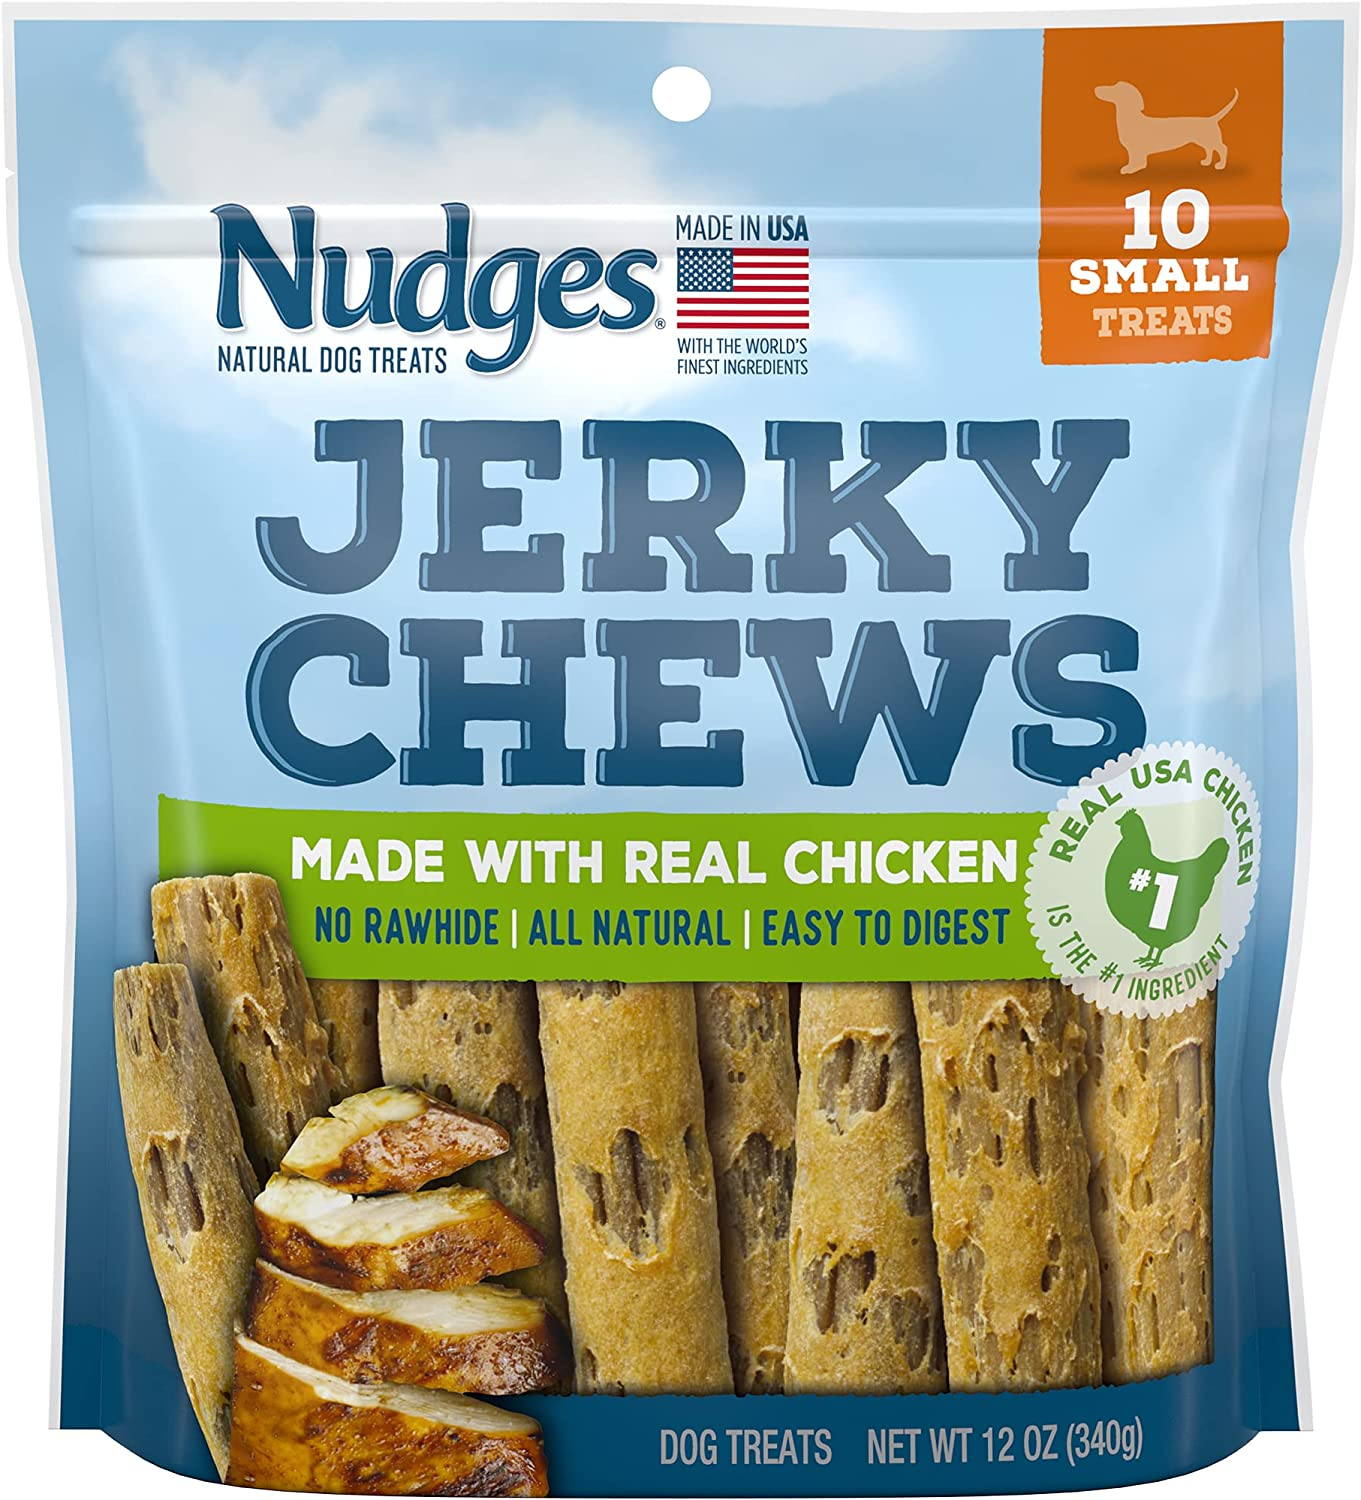 Nudges Natural Dog Treats Jerky Chews Made with Real Chicken